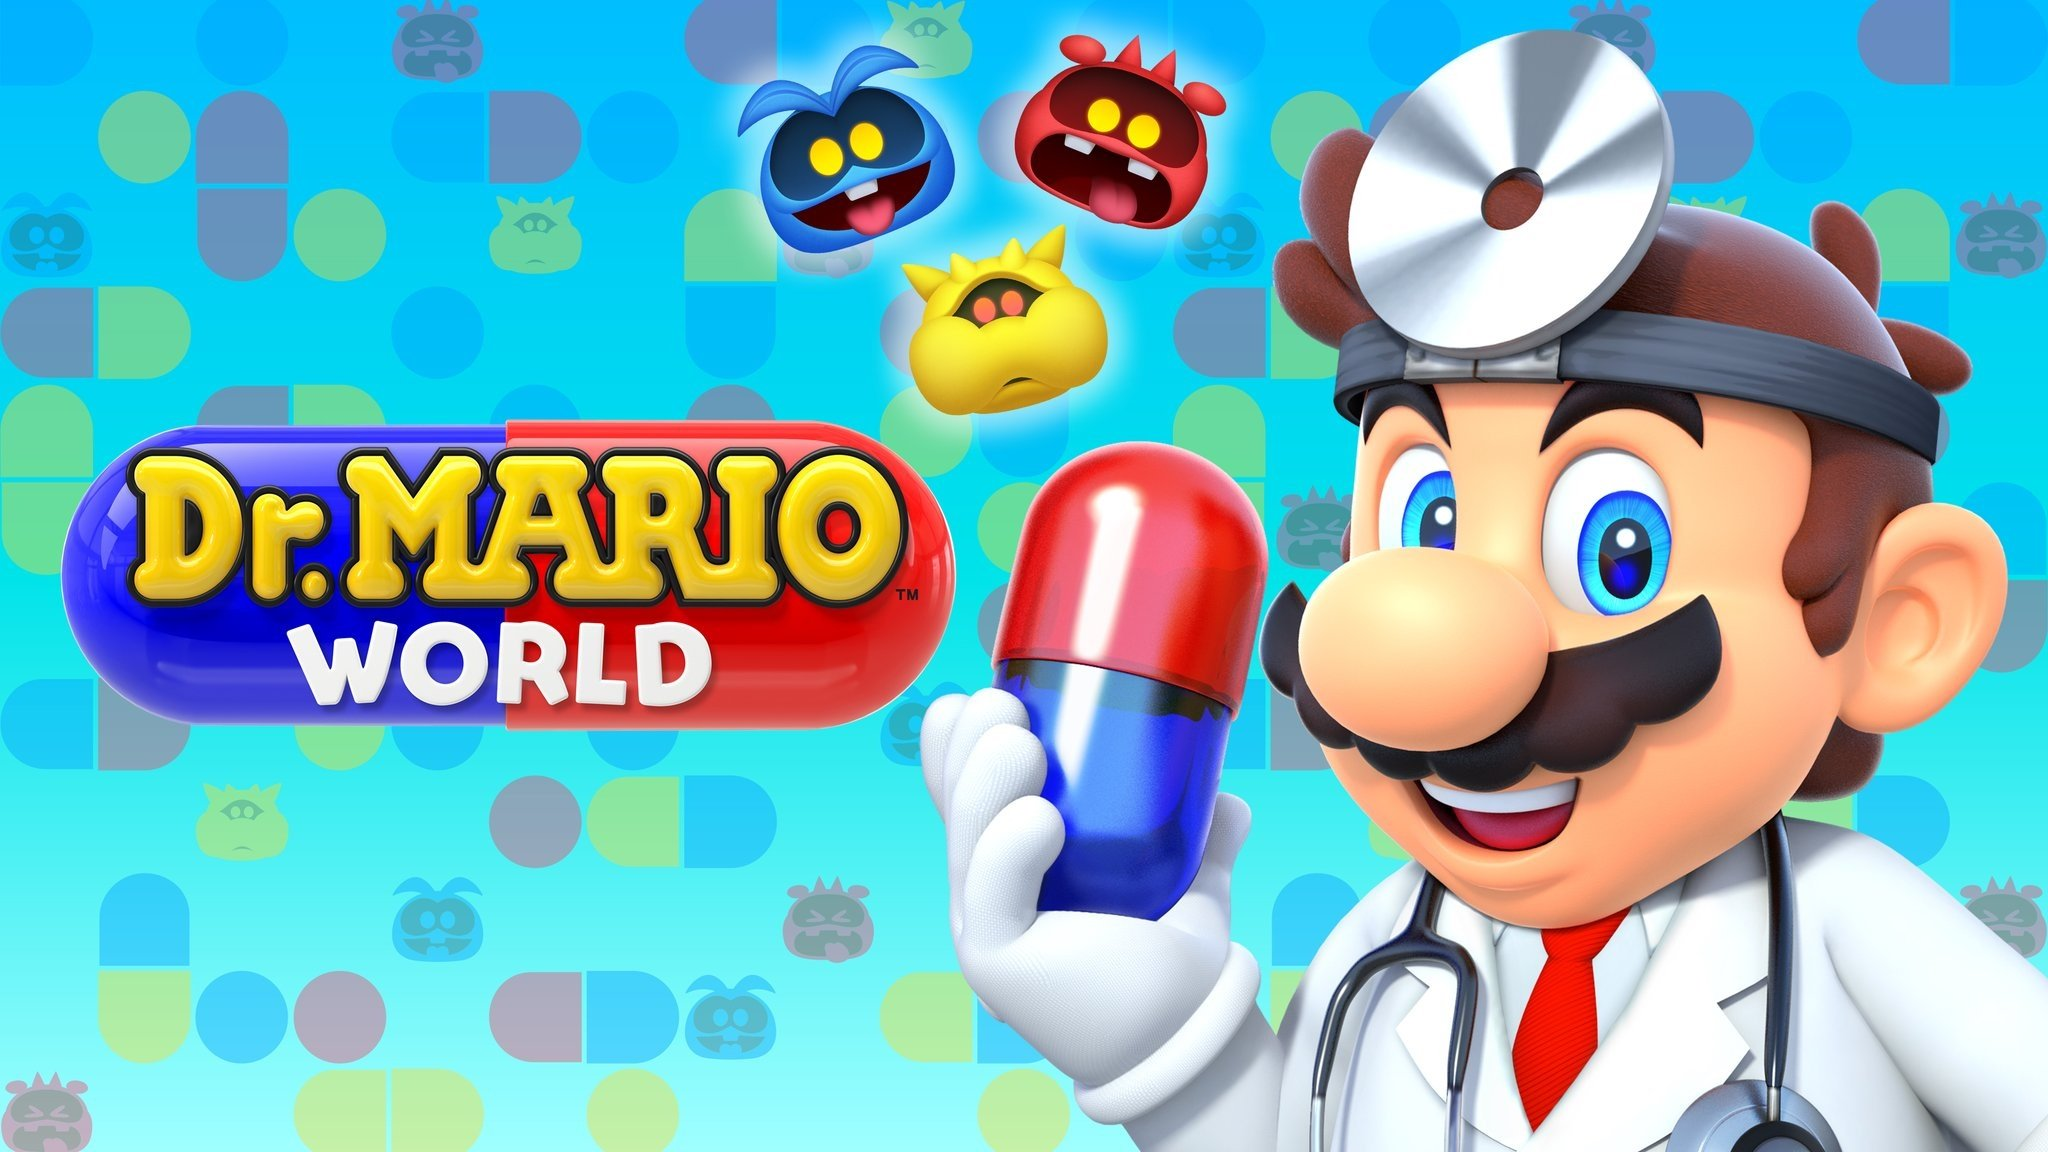 Dr. Mario World Available on July 10th for iOS and Android